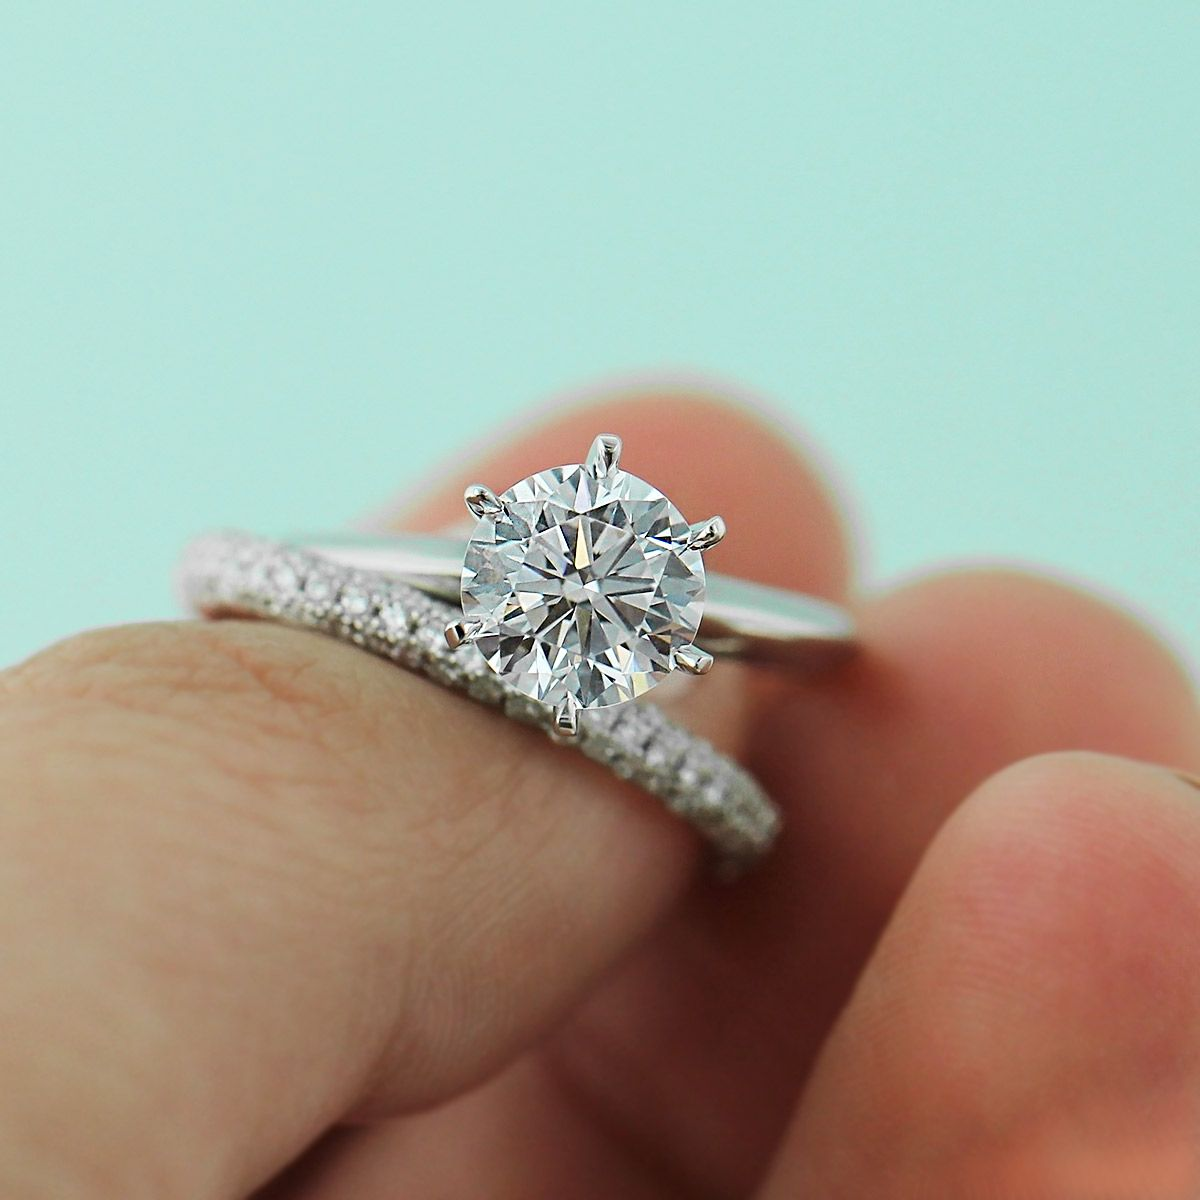 Traditional Solitaire Engagement Ring Classic Engagement Ring Solitaire Micro Pave Wedding Band Wedding Rings Solitaire